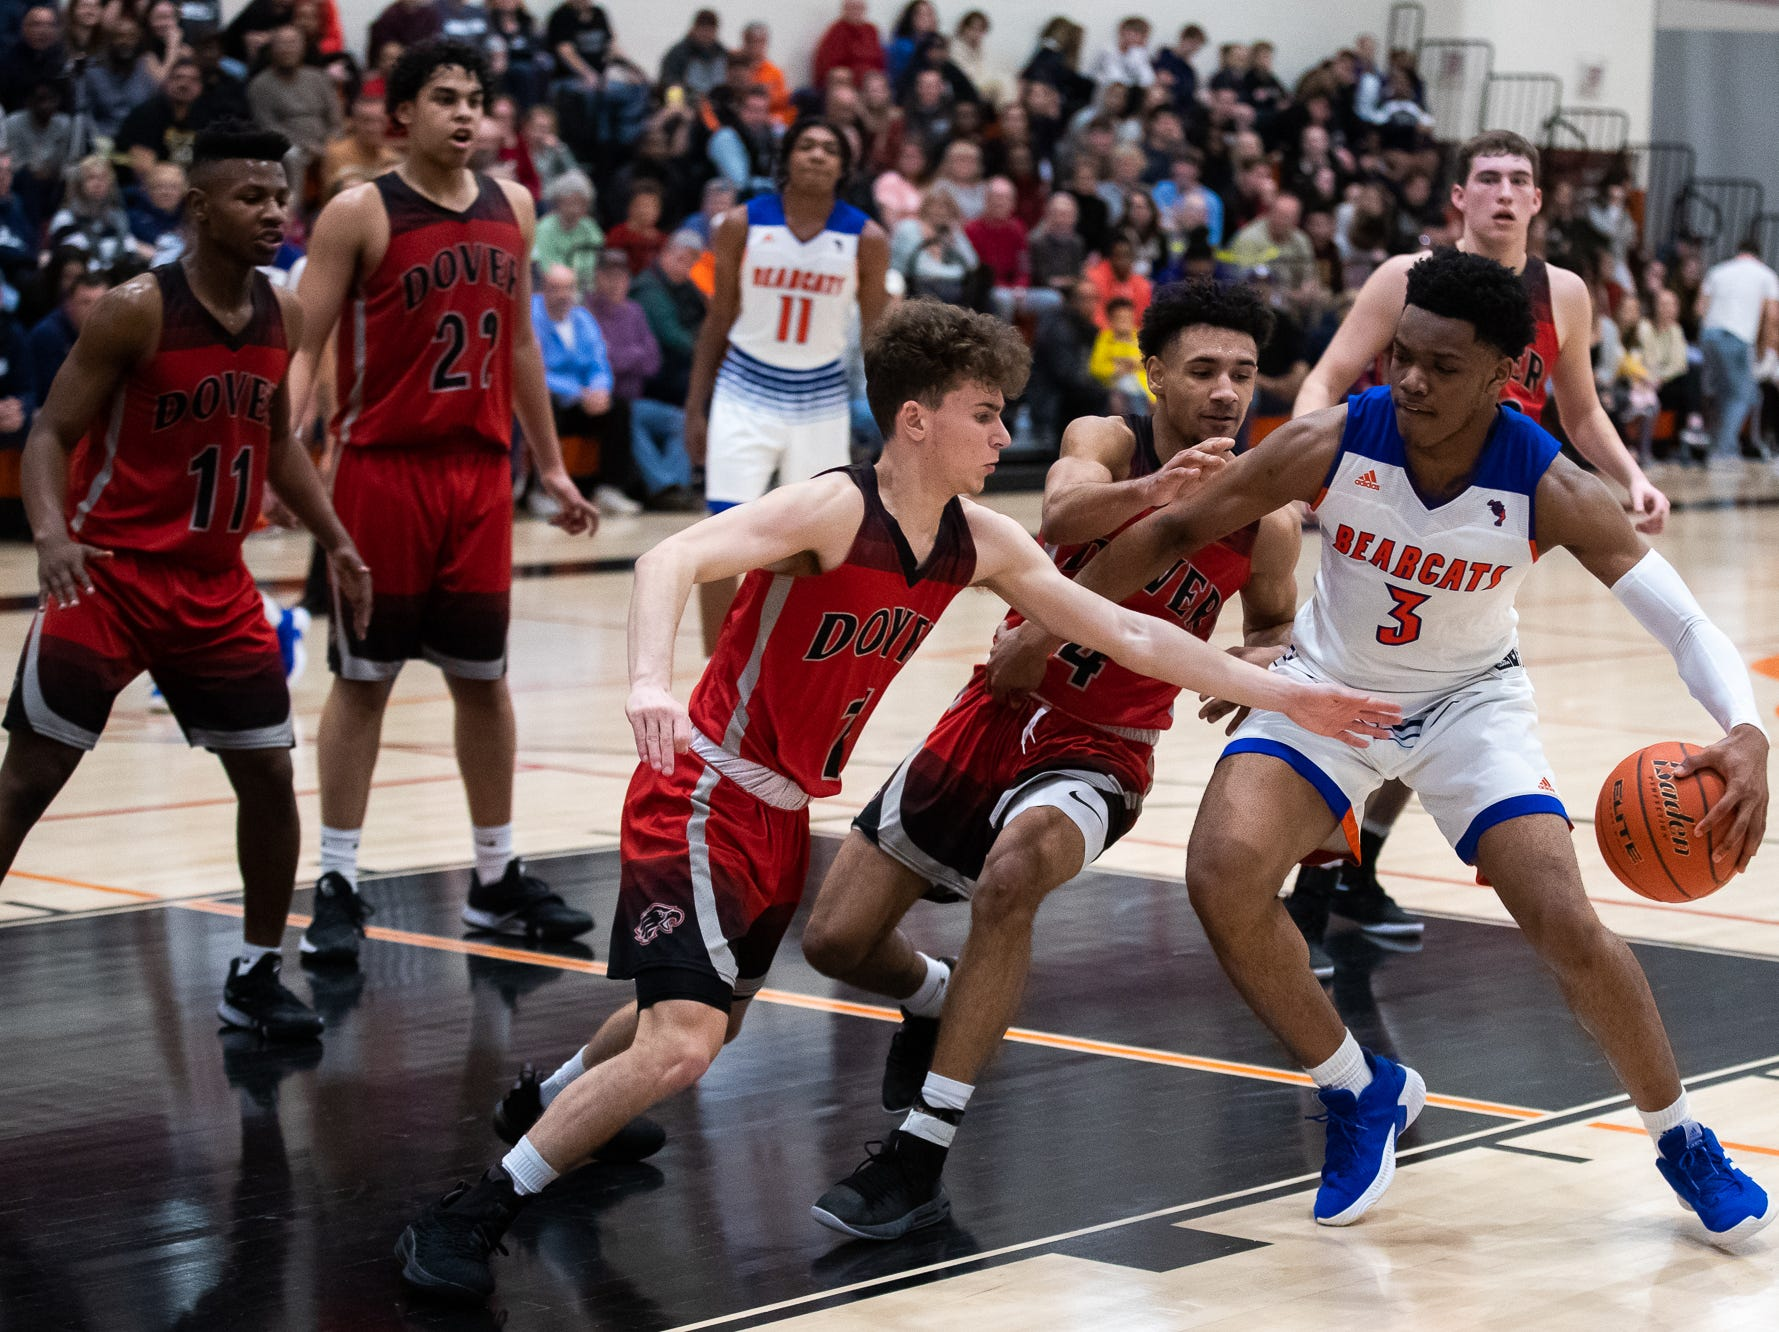 York High's Clovis Gallon Jr. (3) drives to the basket during the second half of a YAIAA quarterfinal between York High and Dover, Saturday, Feb. 9, 2019, at Central York High School. The York High Bearcats defeated the Dover Eagles 75-53.